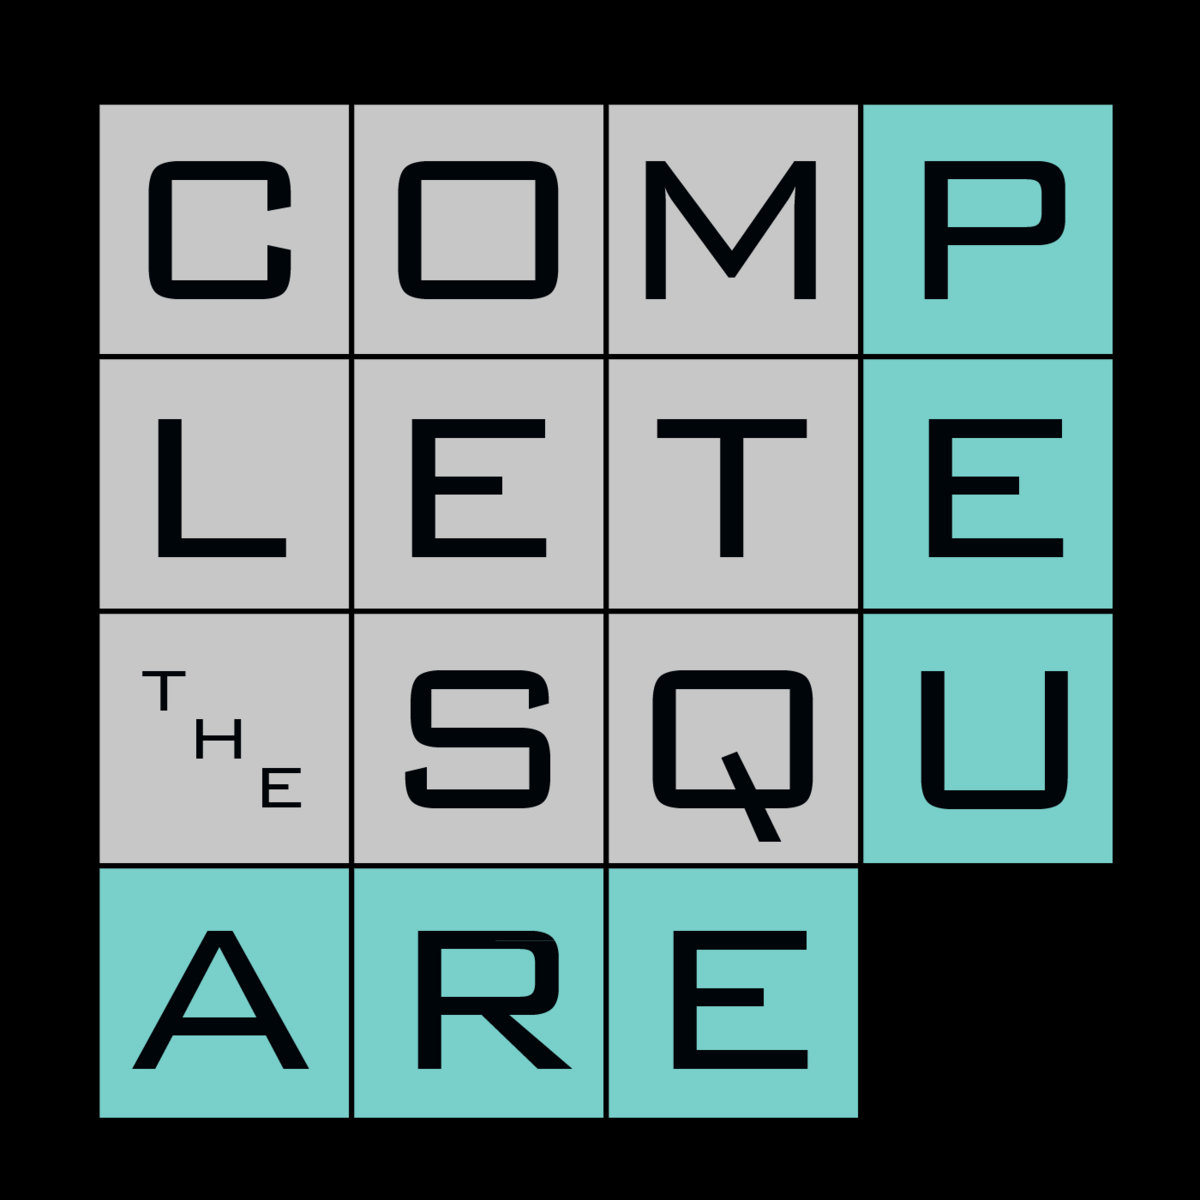 Complete The Square! | icanhasmath